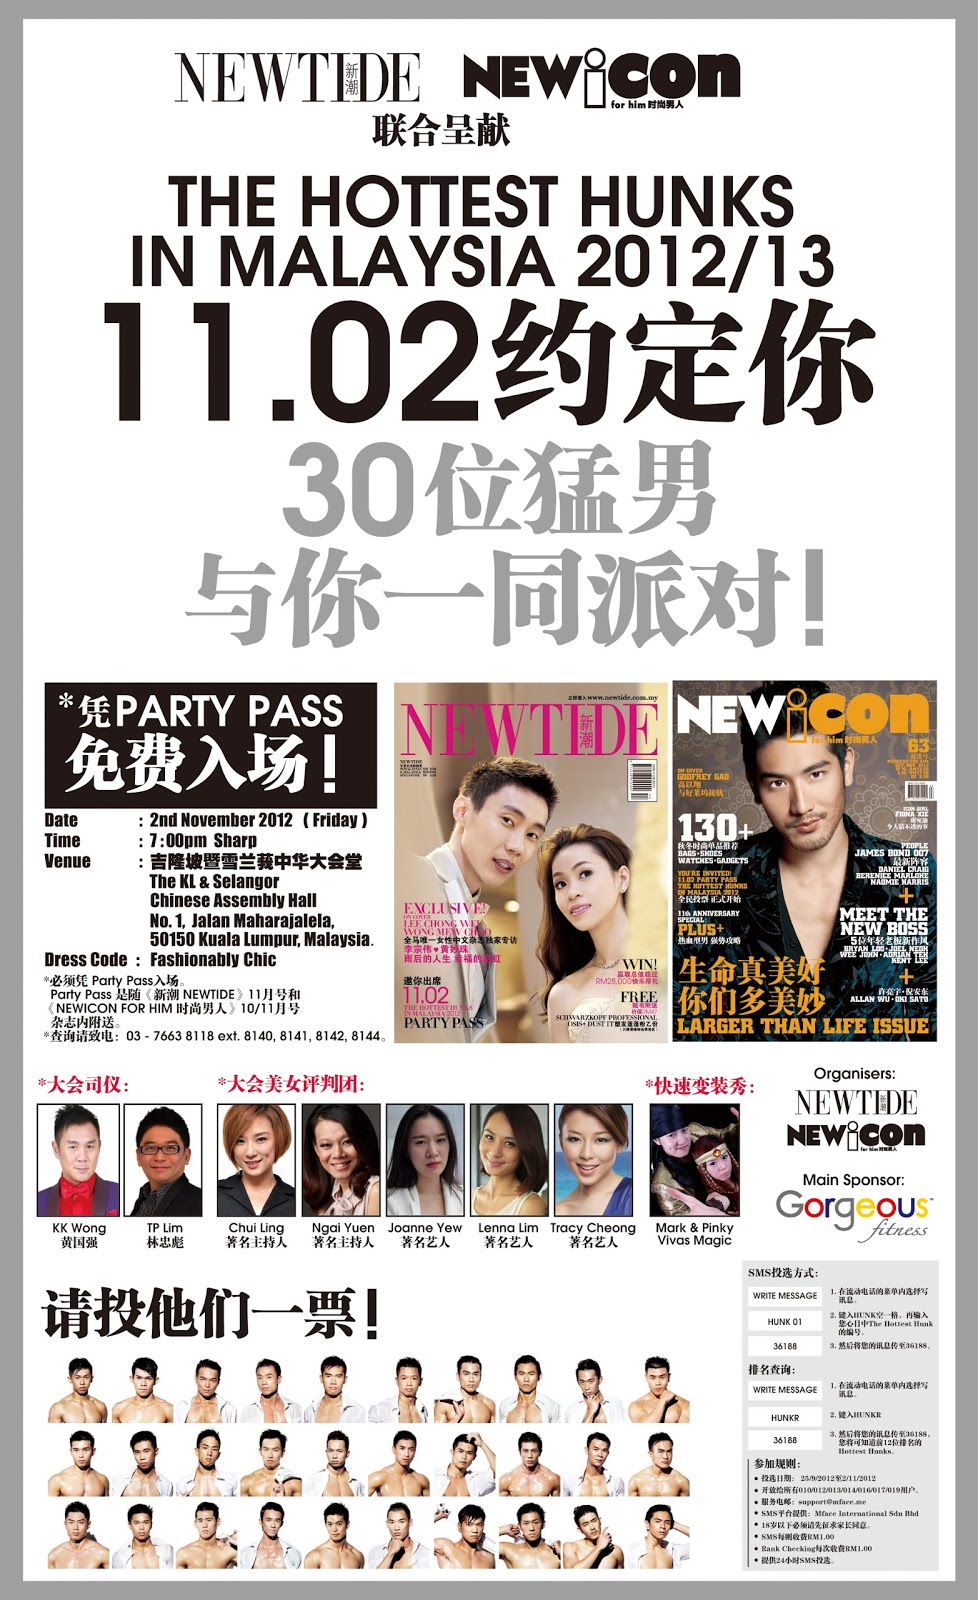 THE HOTTEST HUNKS IN MALAYSIA 2012 时尚猛男派对  11.02 热力登场